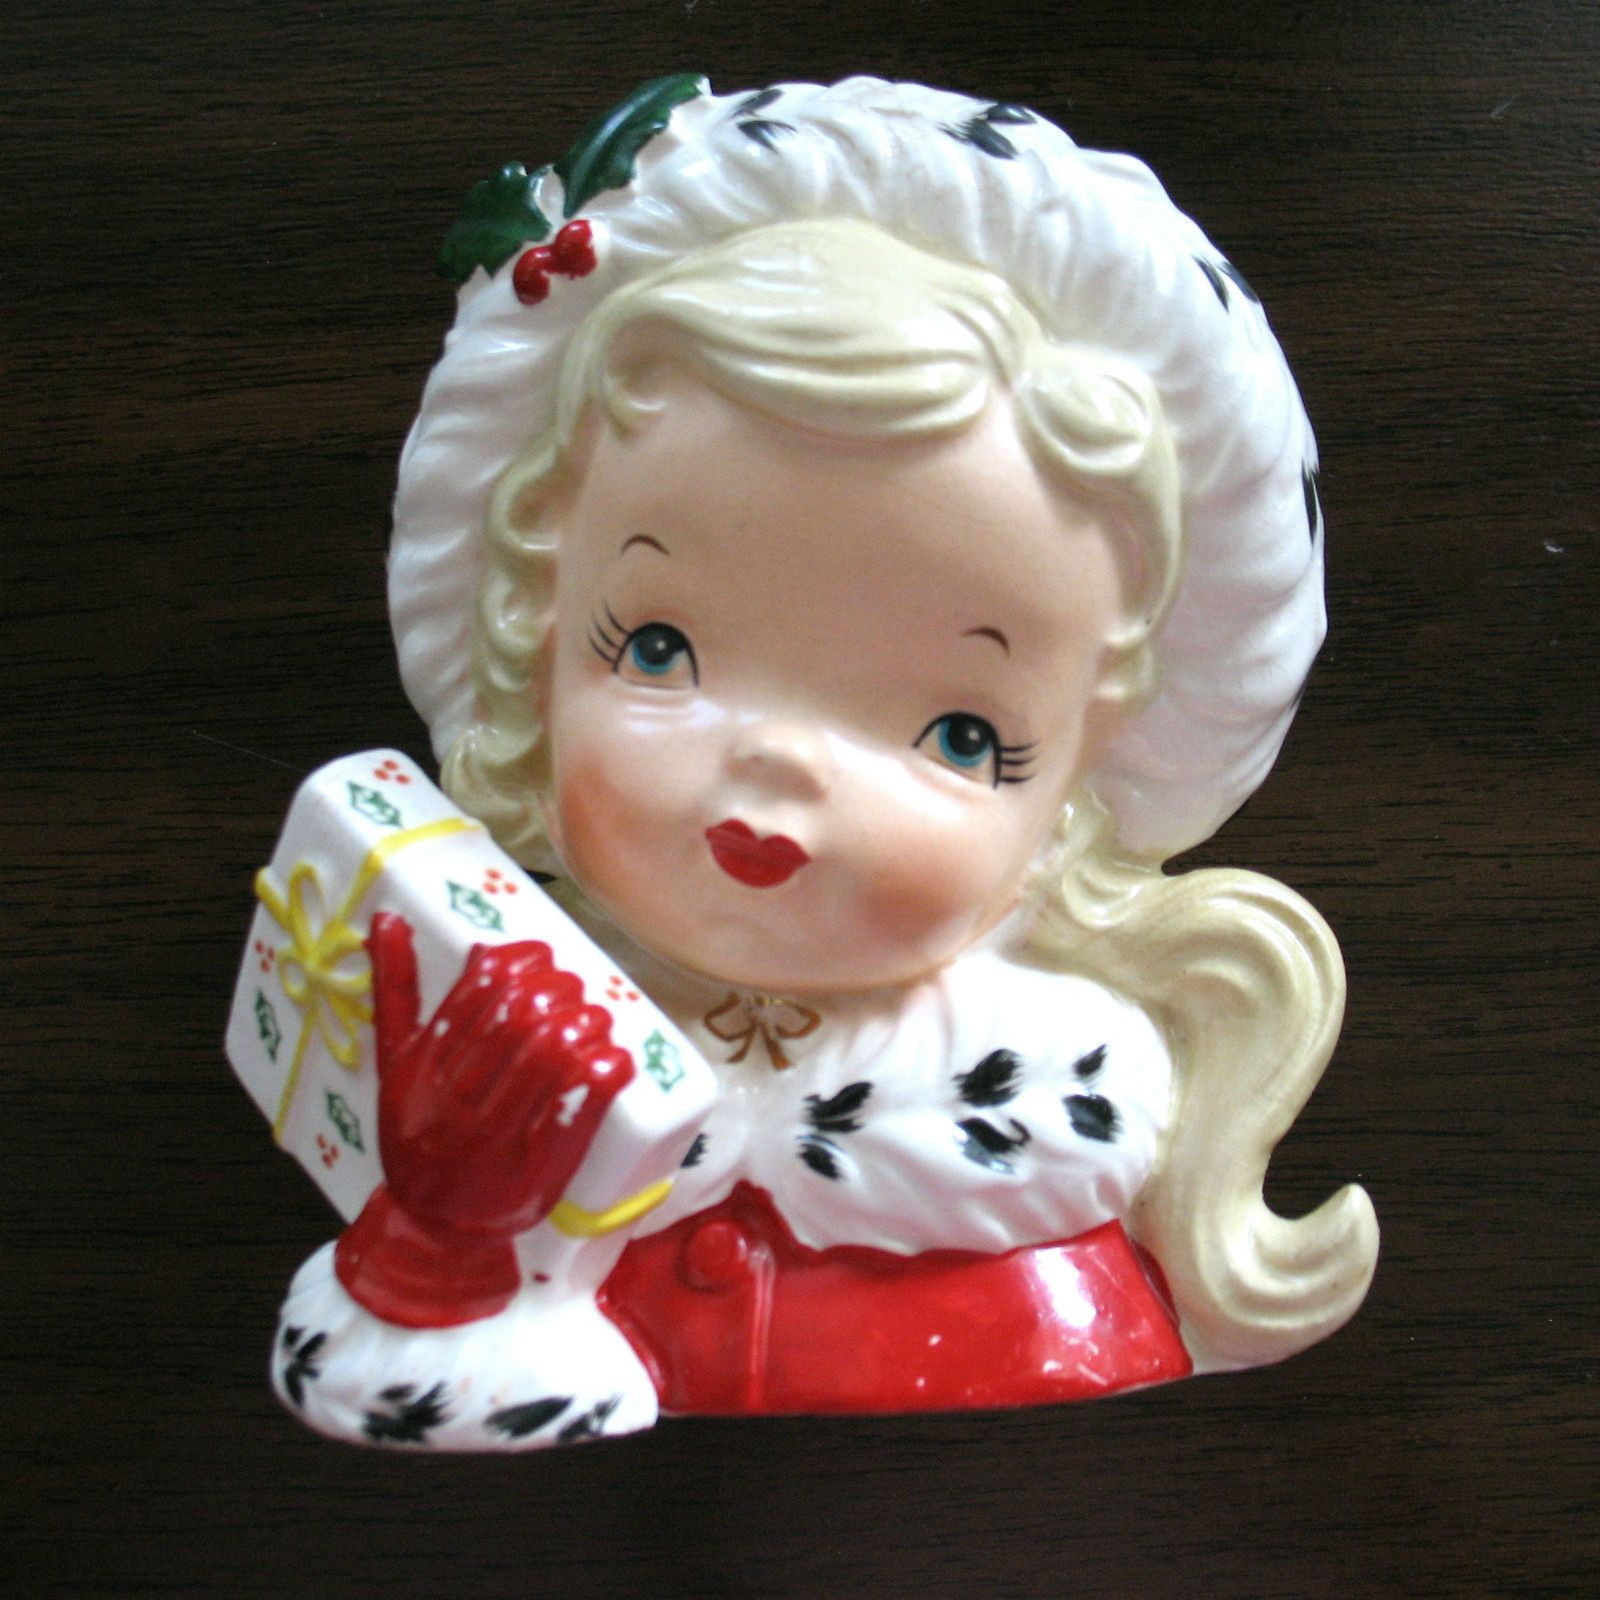 1958 napco lady head vase of 1956 napco christmas girl head vase headvase for 1956 napco christmas girl head vase